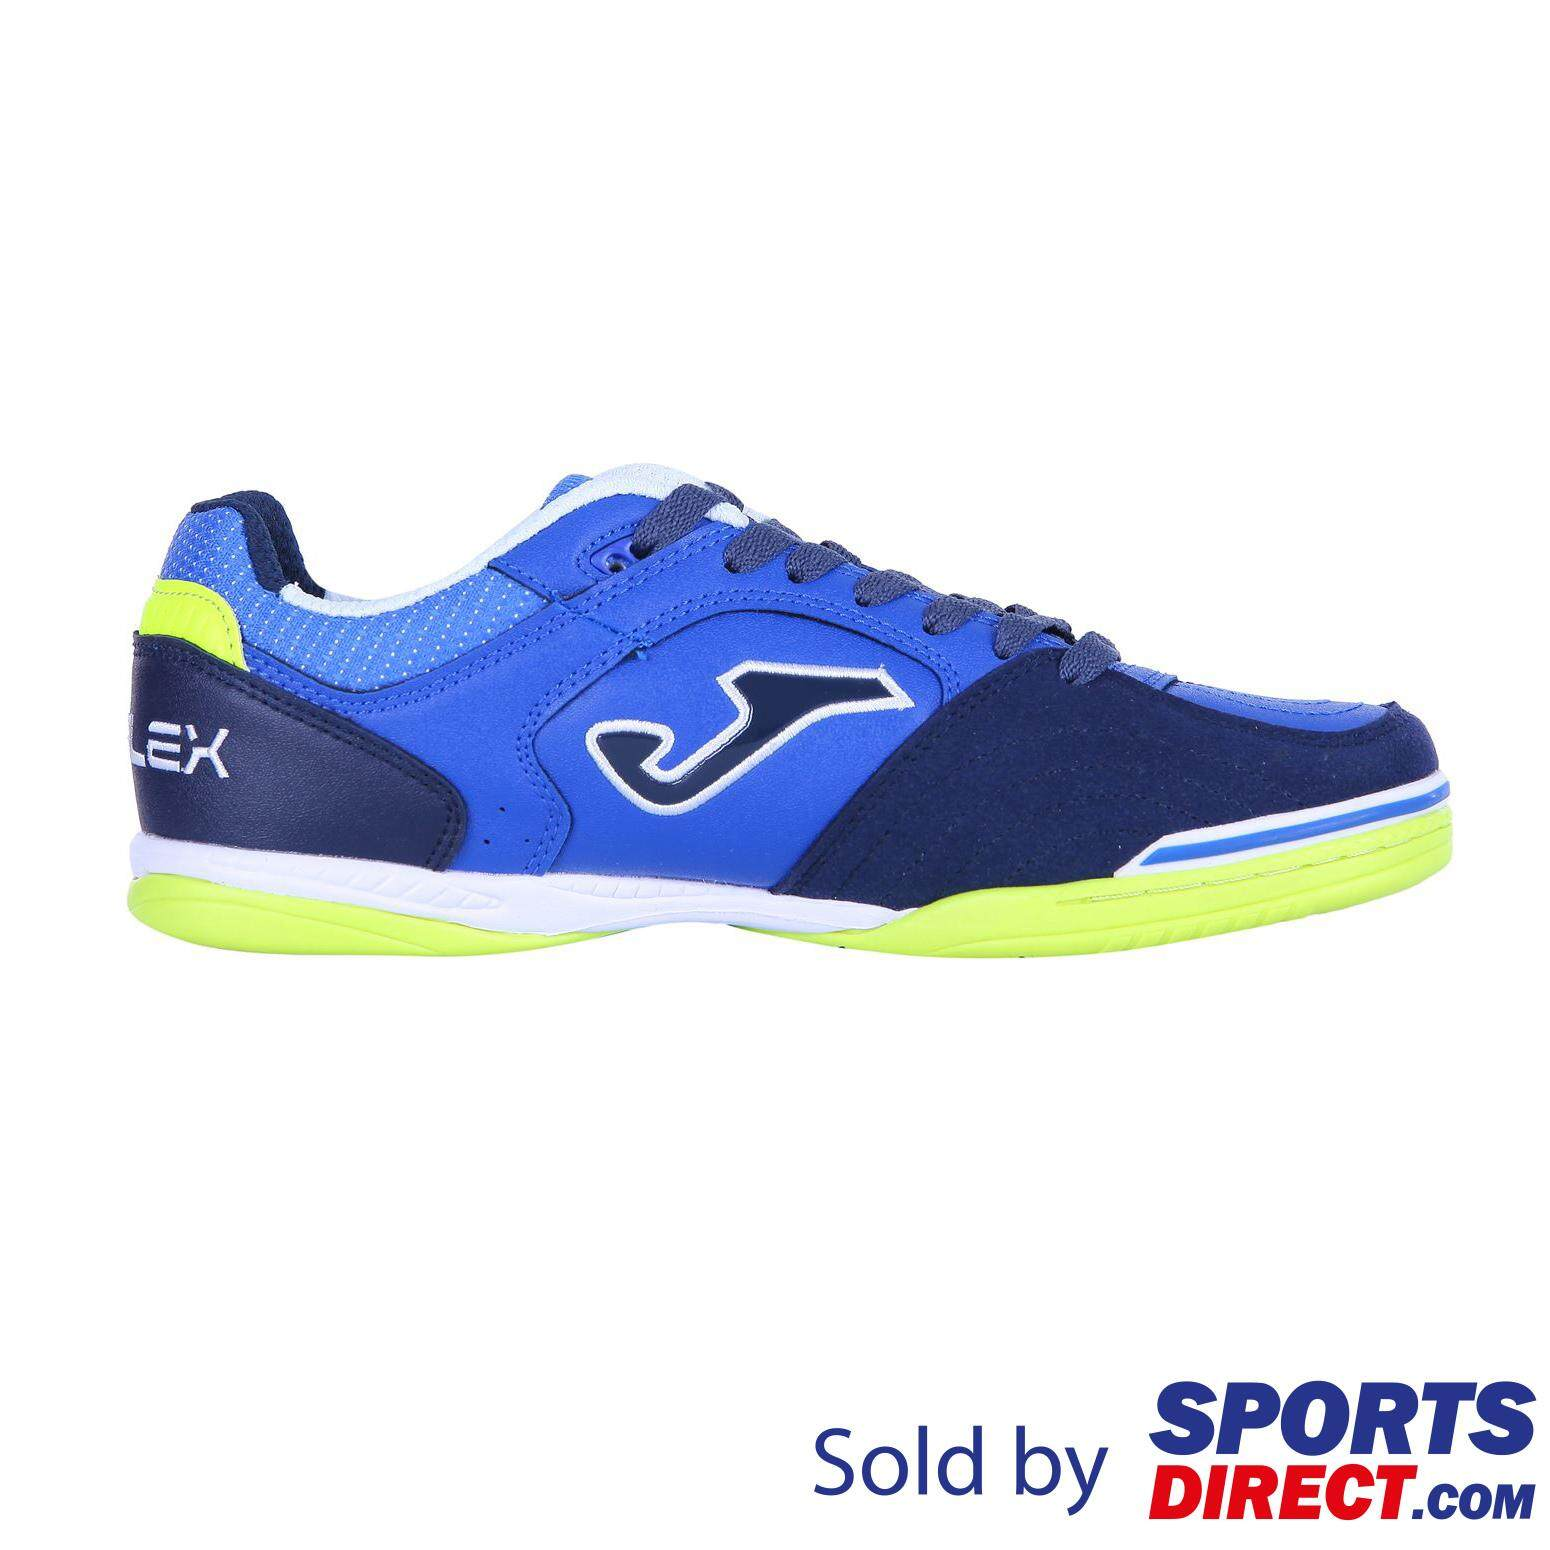 272cd90bc0 Joma - Buy Joma at Best Price in Malaysia | www.lazada.com.my